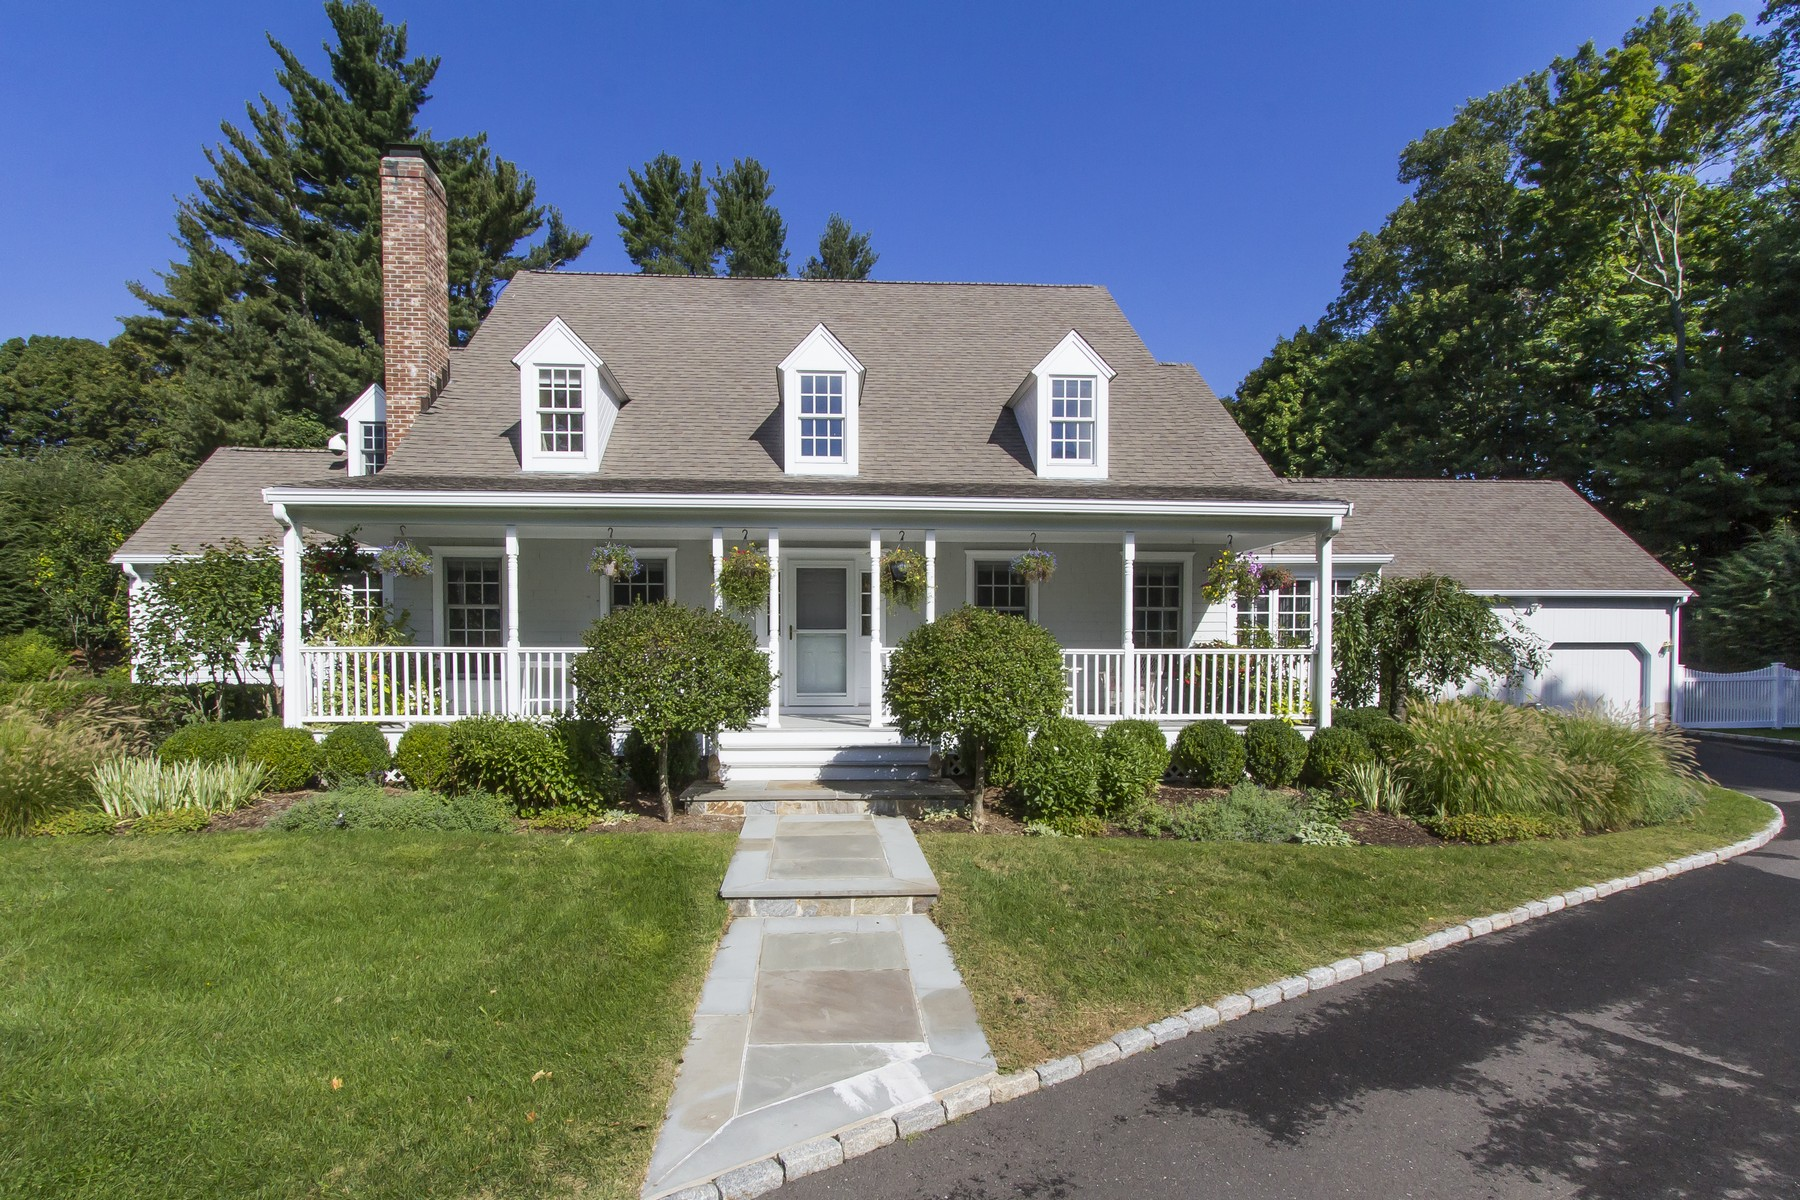 Single Family Home for Sale at Majestic Custom Colonial 24 Oak Knoll Road Ridgefield, Connecticut, 06877 United States